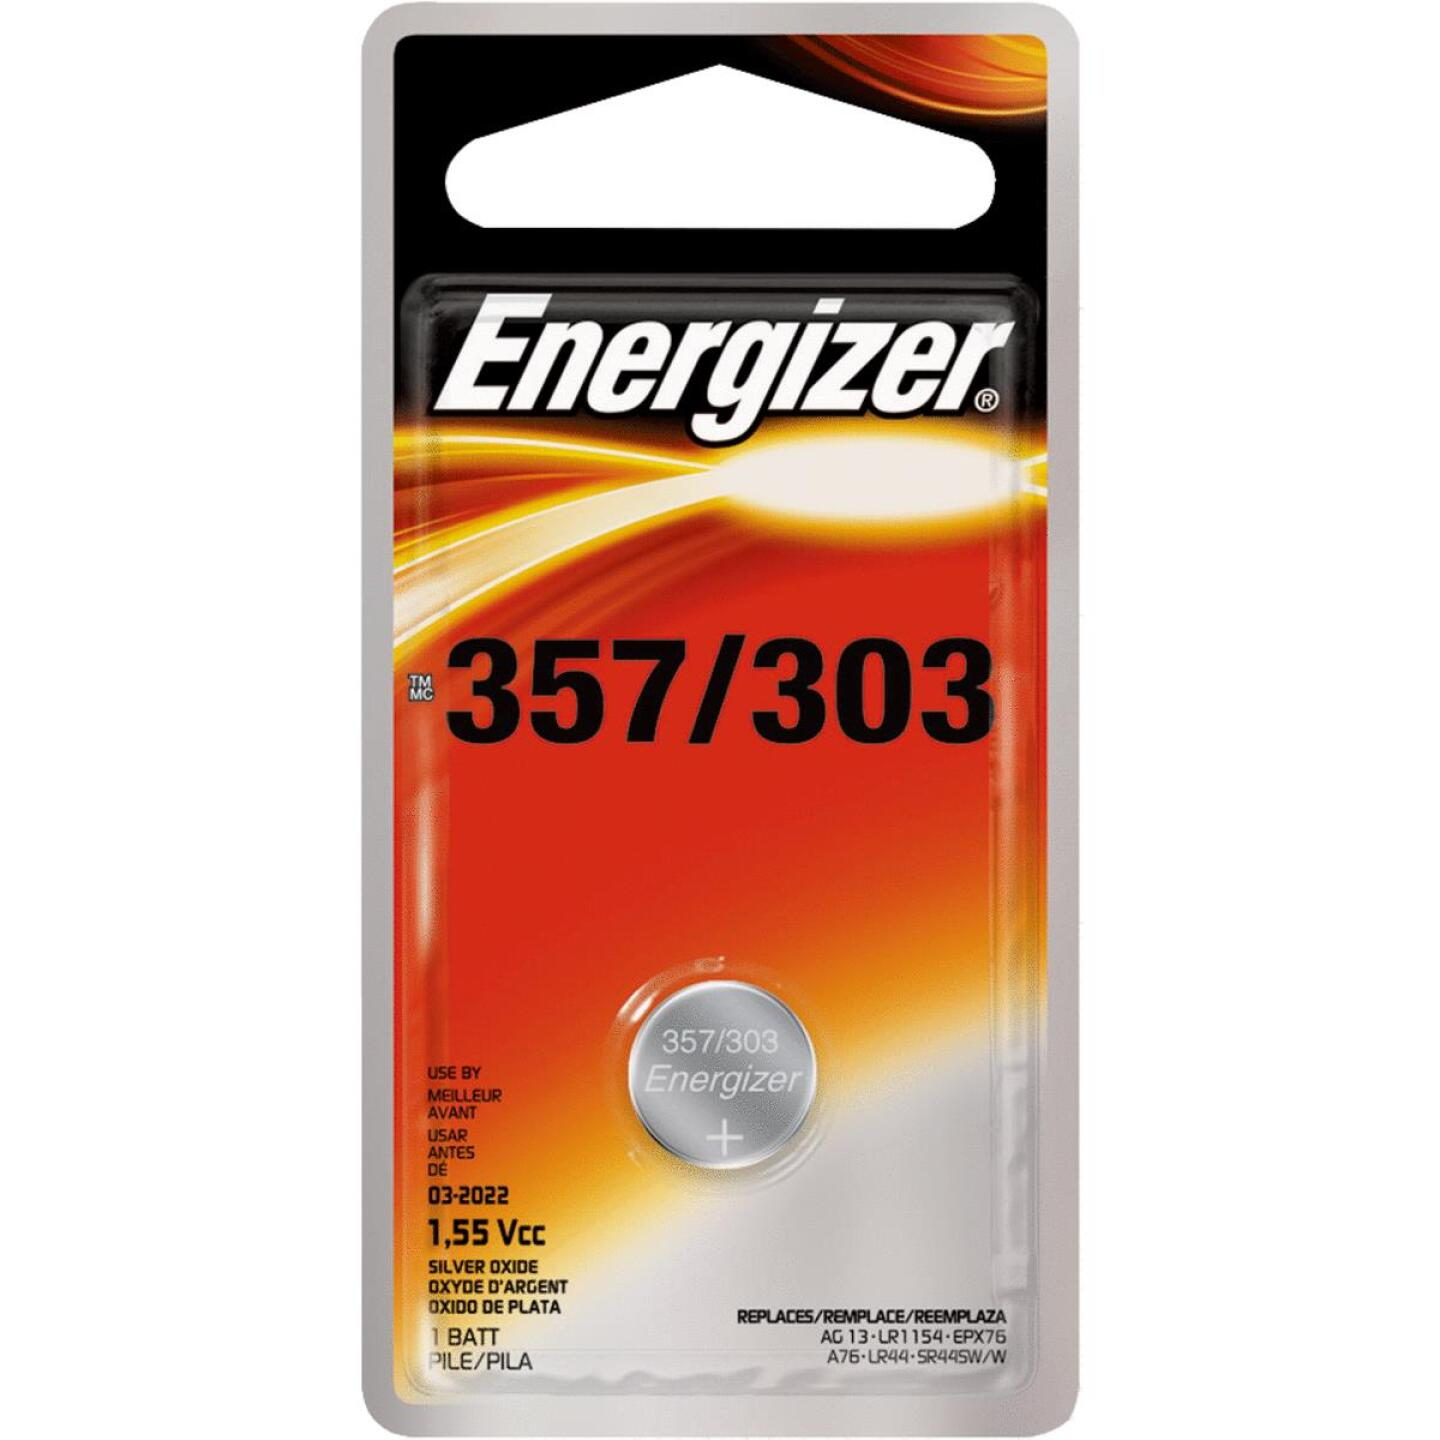 Energizer 357/303 Silver Oxide Button Cell Battery (3-Pack) Image 1